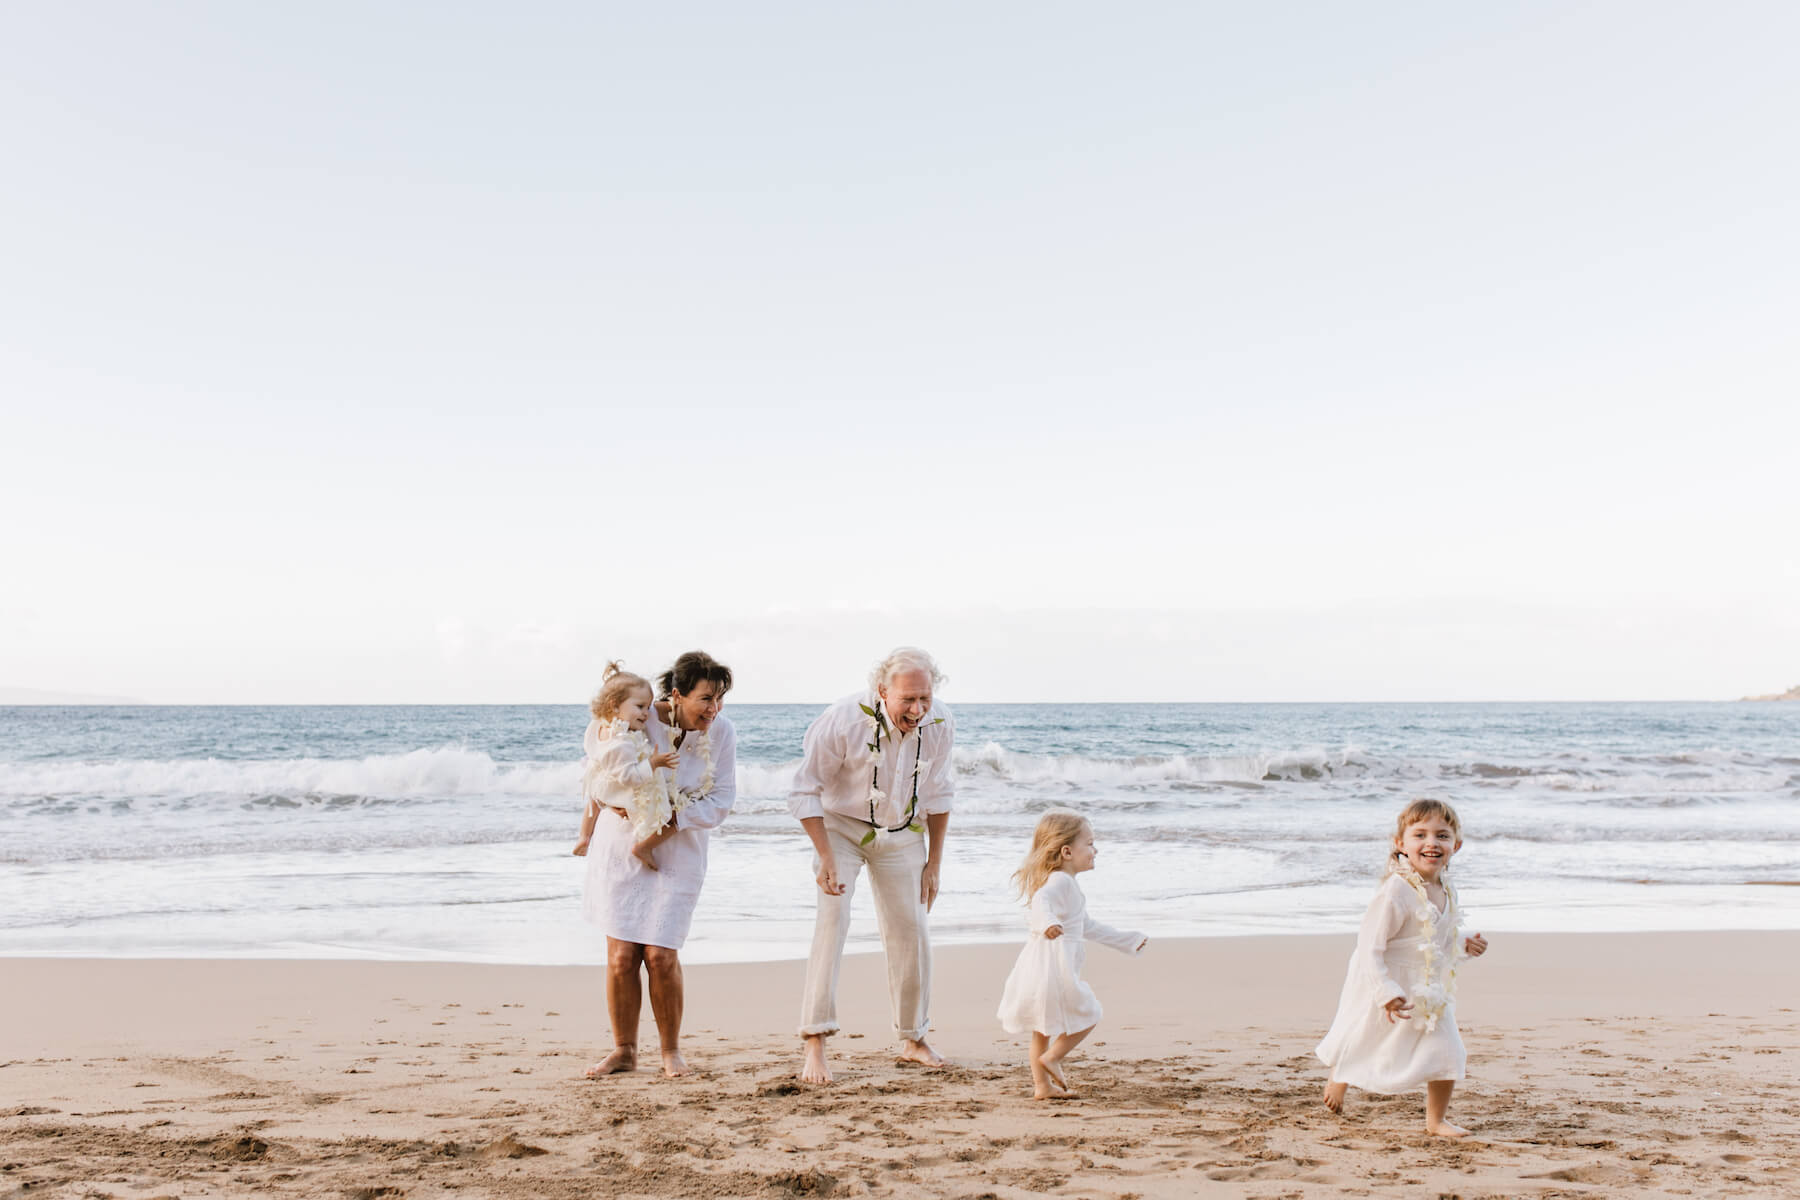 grandparents with their grandkids running on the beach in Maui, Hawaii